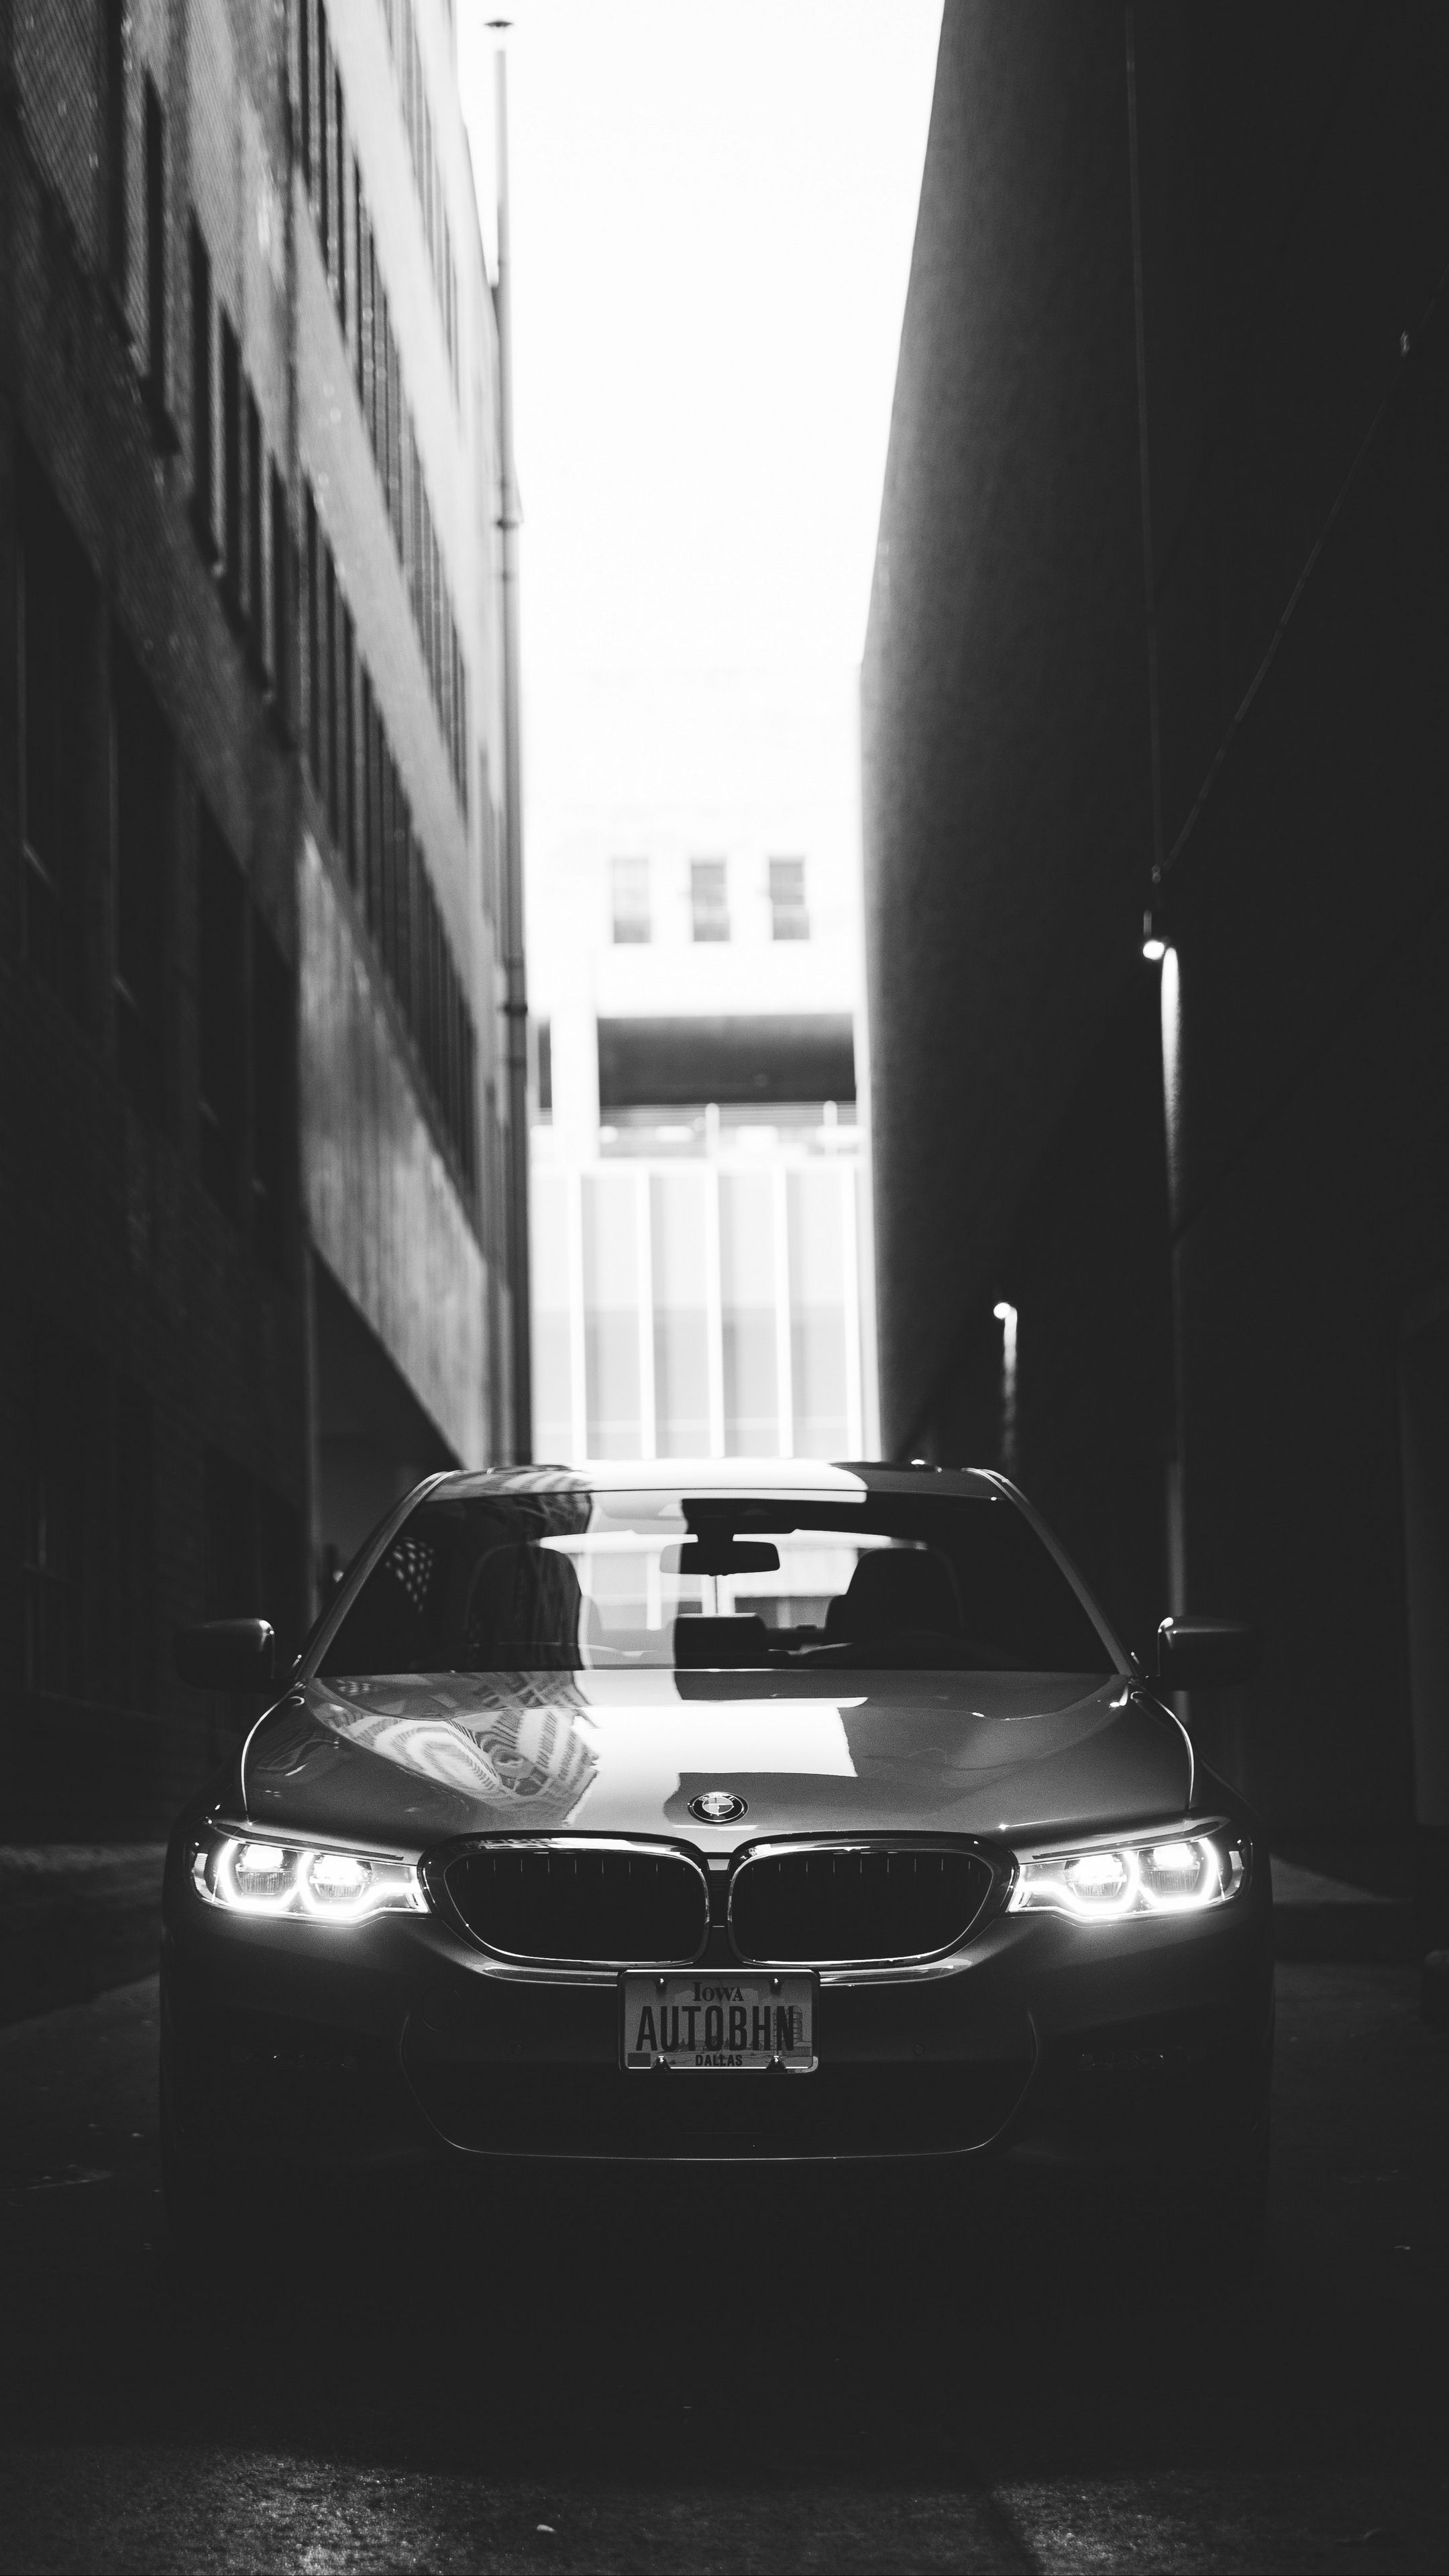 Cars Bmw Car Bw Wallpapers Hd 4k Background For Android Bmw Wallpapers Bmw Car Iphone Wallpaper